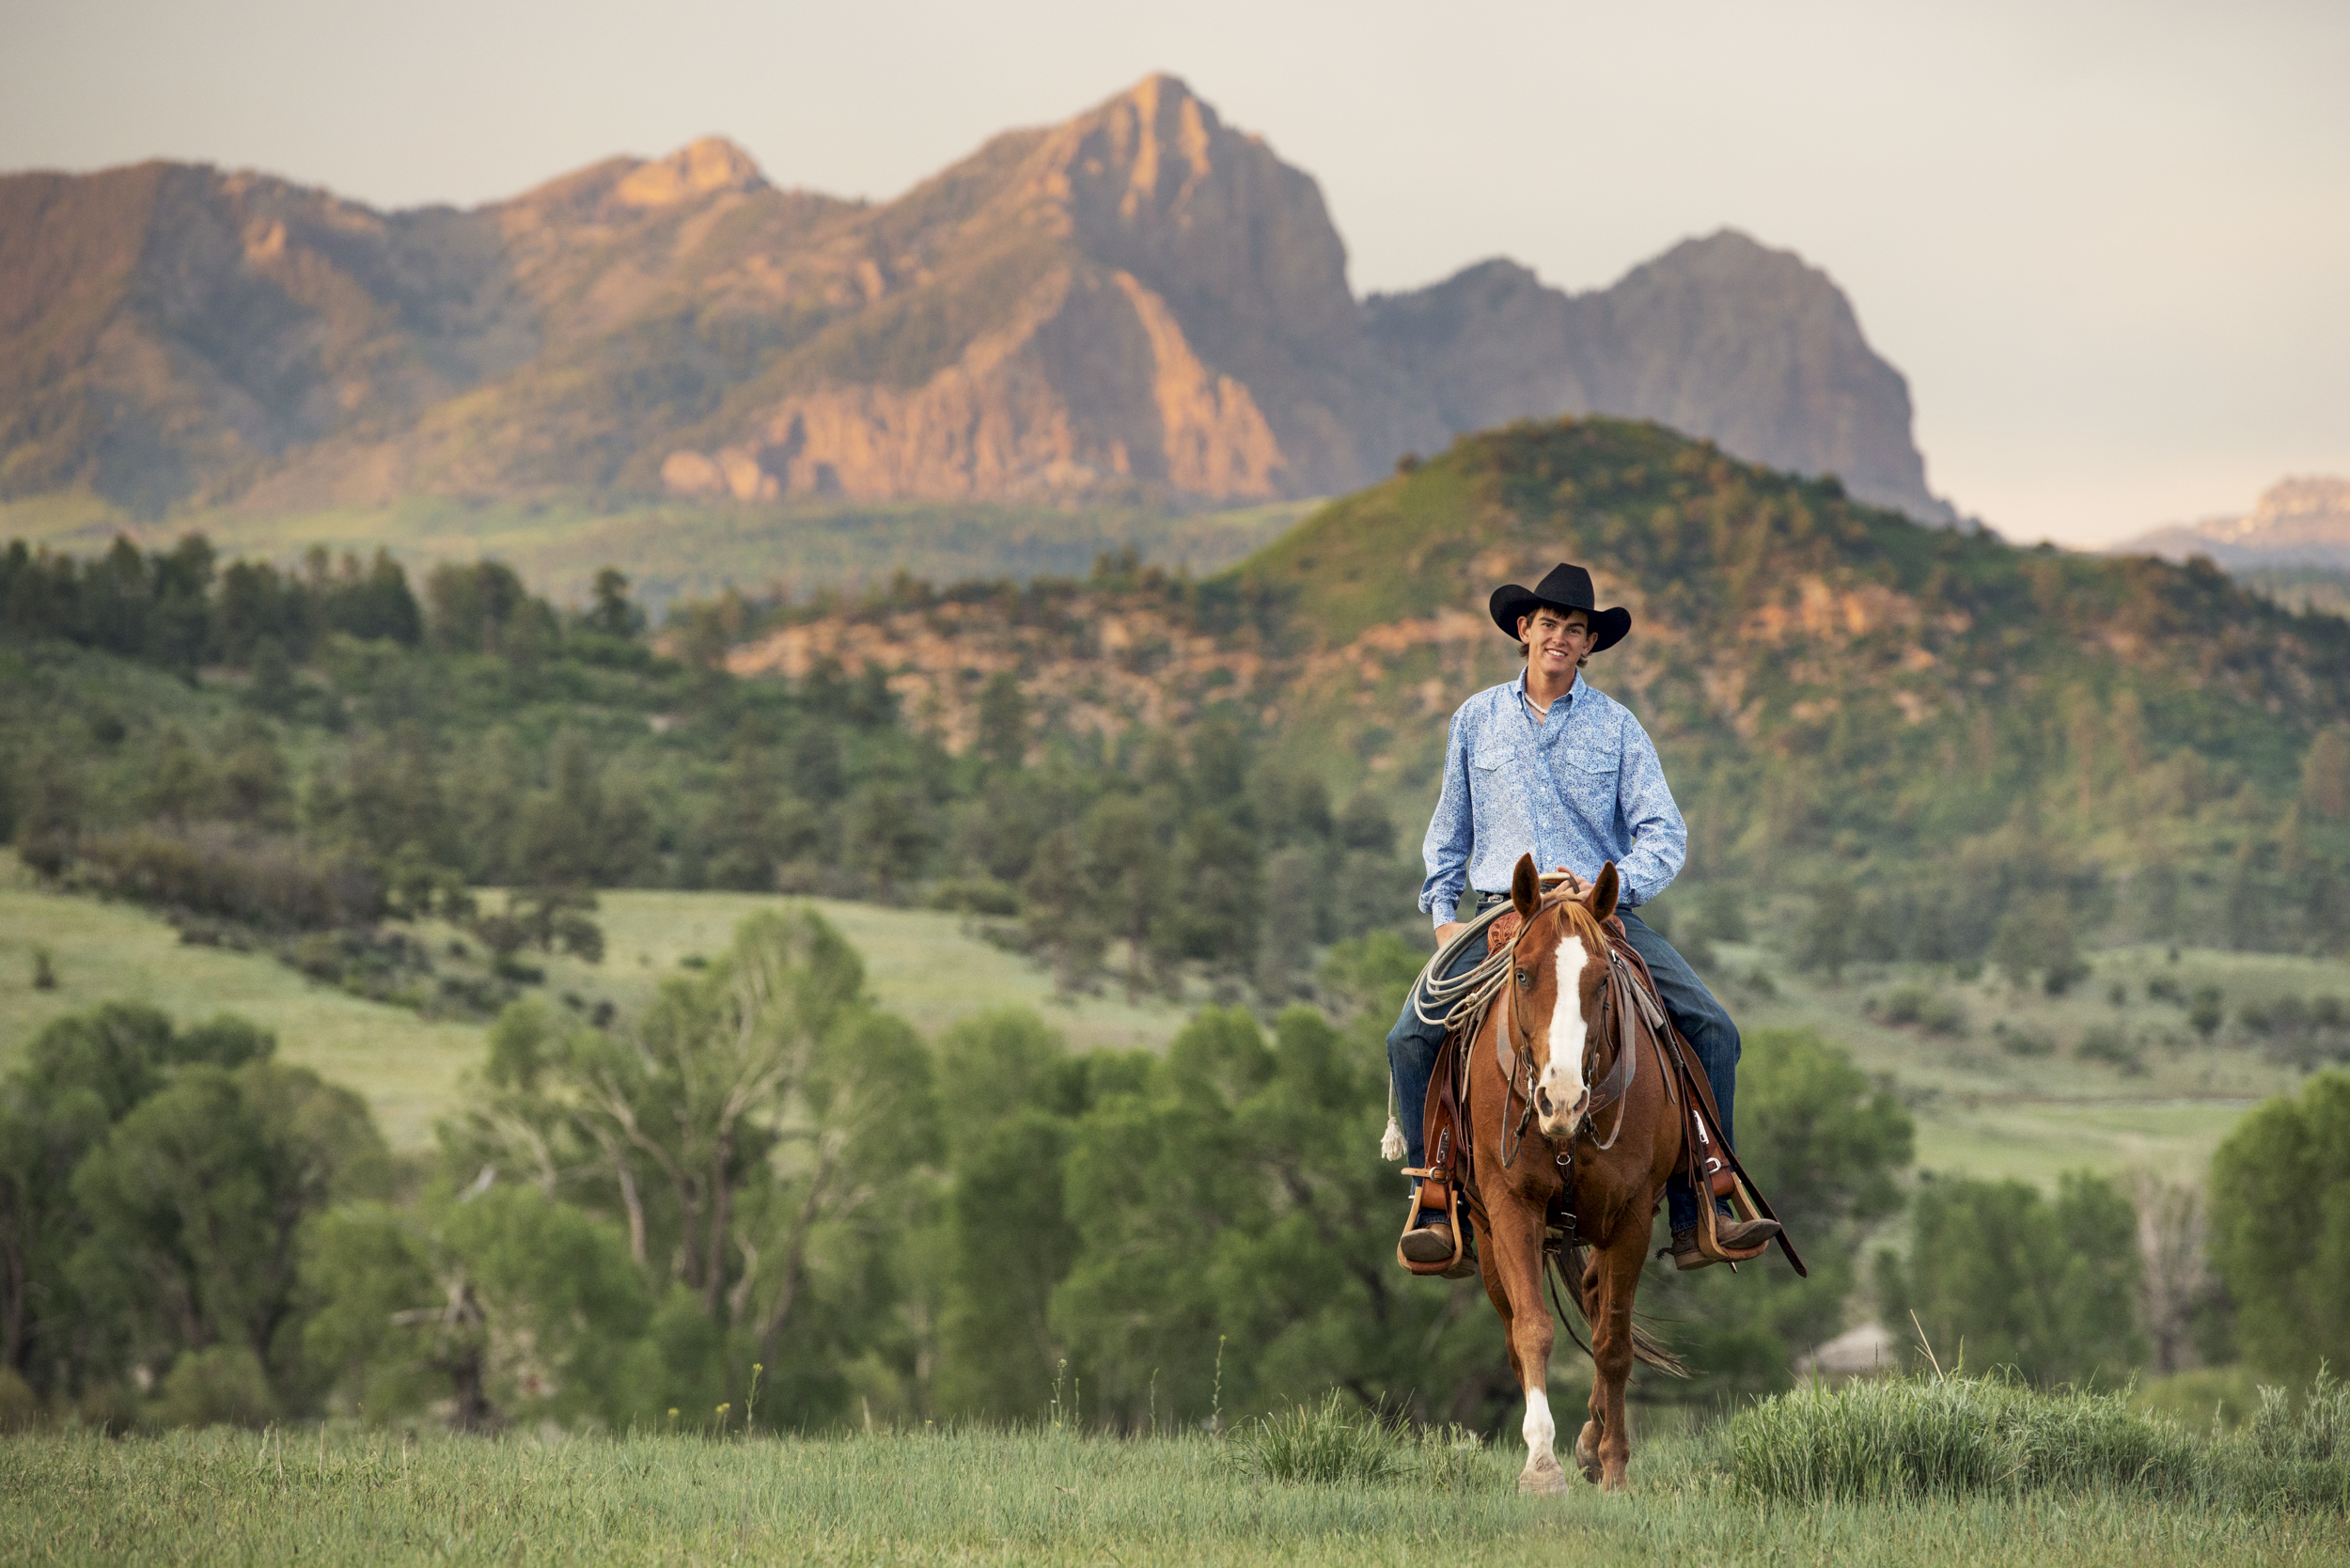 Male horseback rider at sunset near the Colorado/New Mexico state line